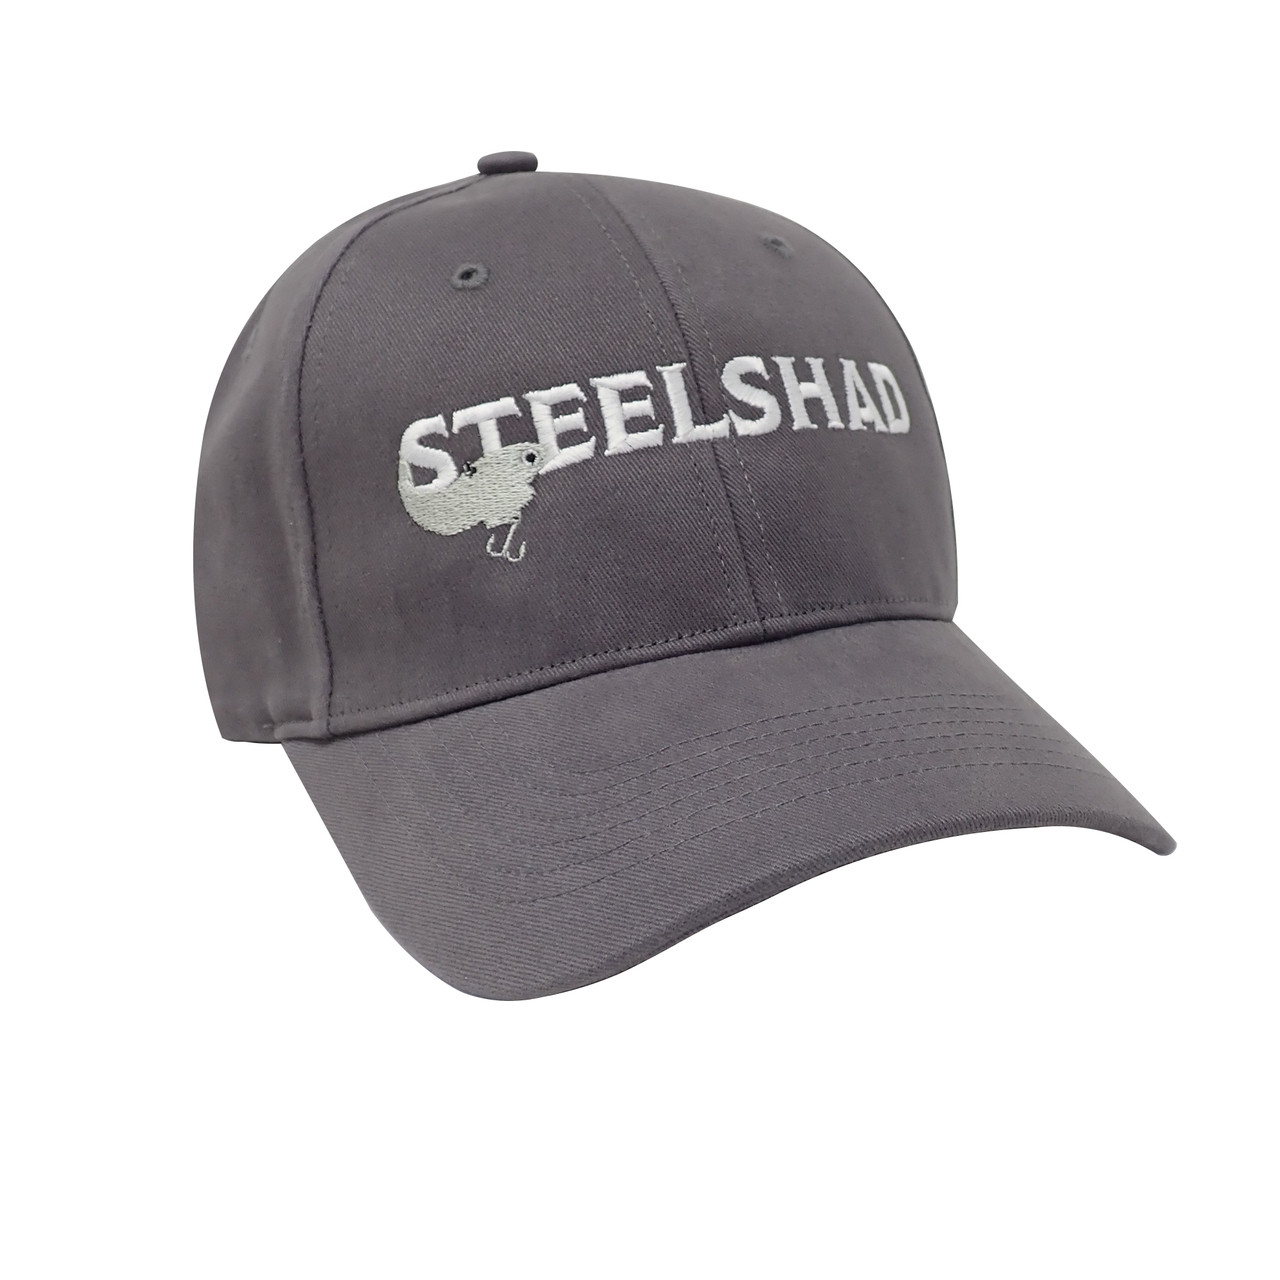 SteelShad Hat - Gray Twill - White Logo/Silver Lure